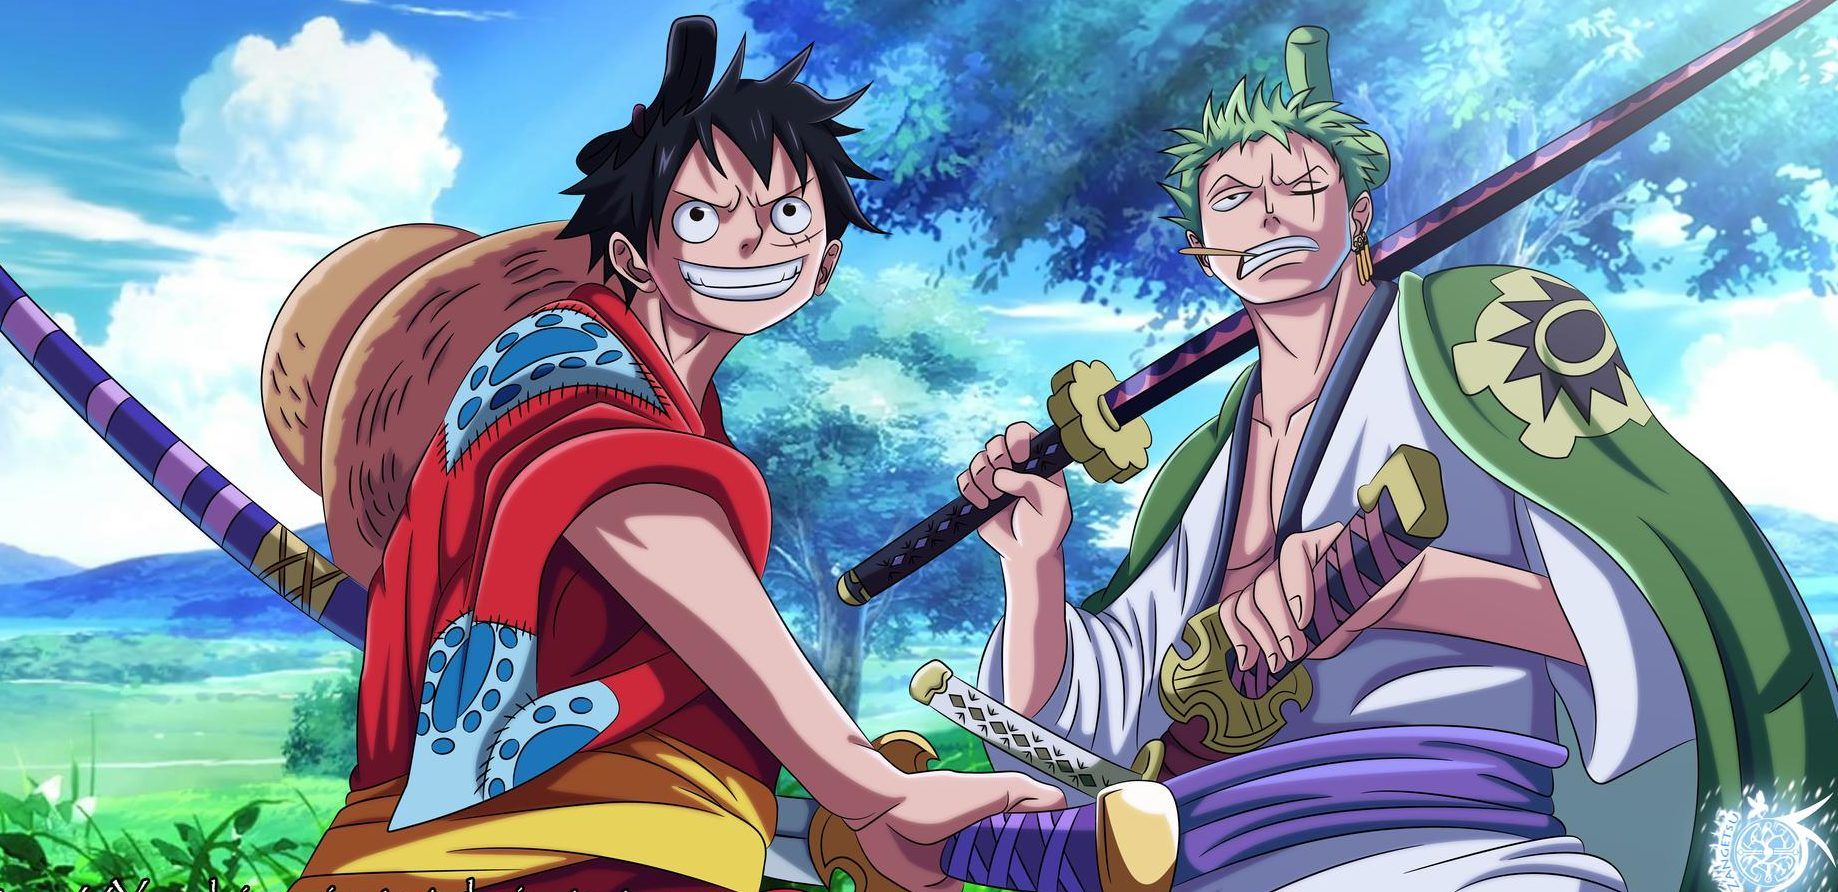 Iphone One Piece Wano Wallpaper Hd Doraemon